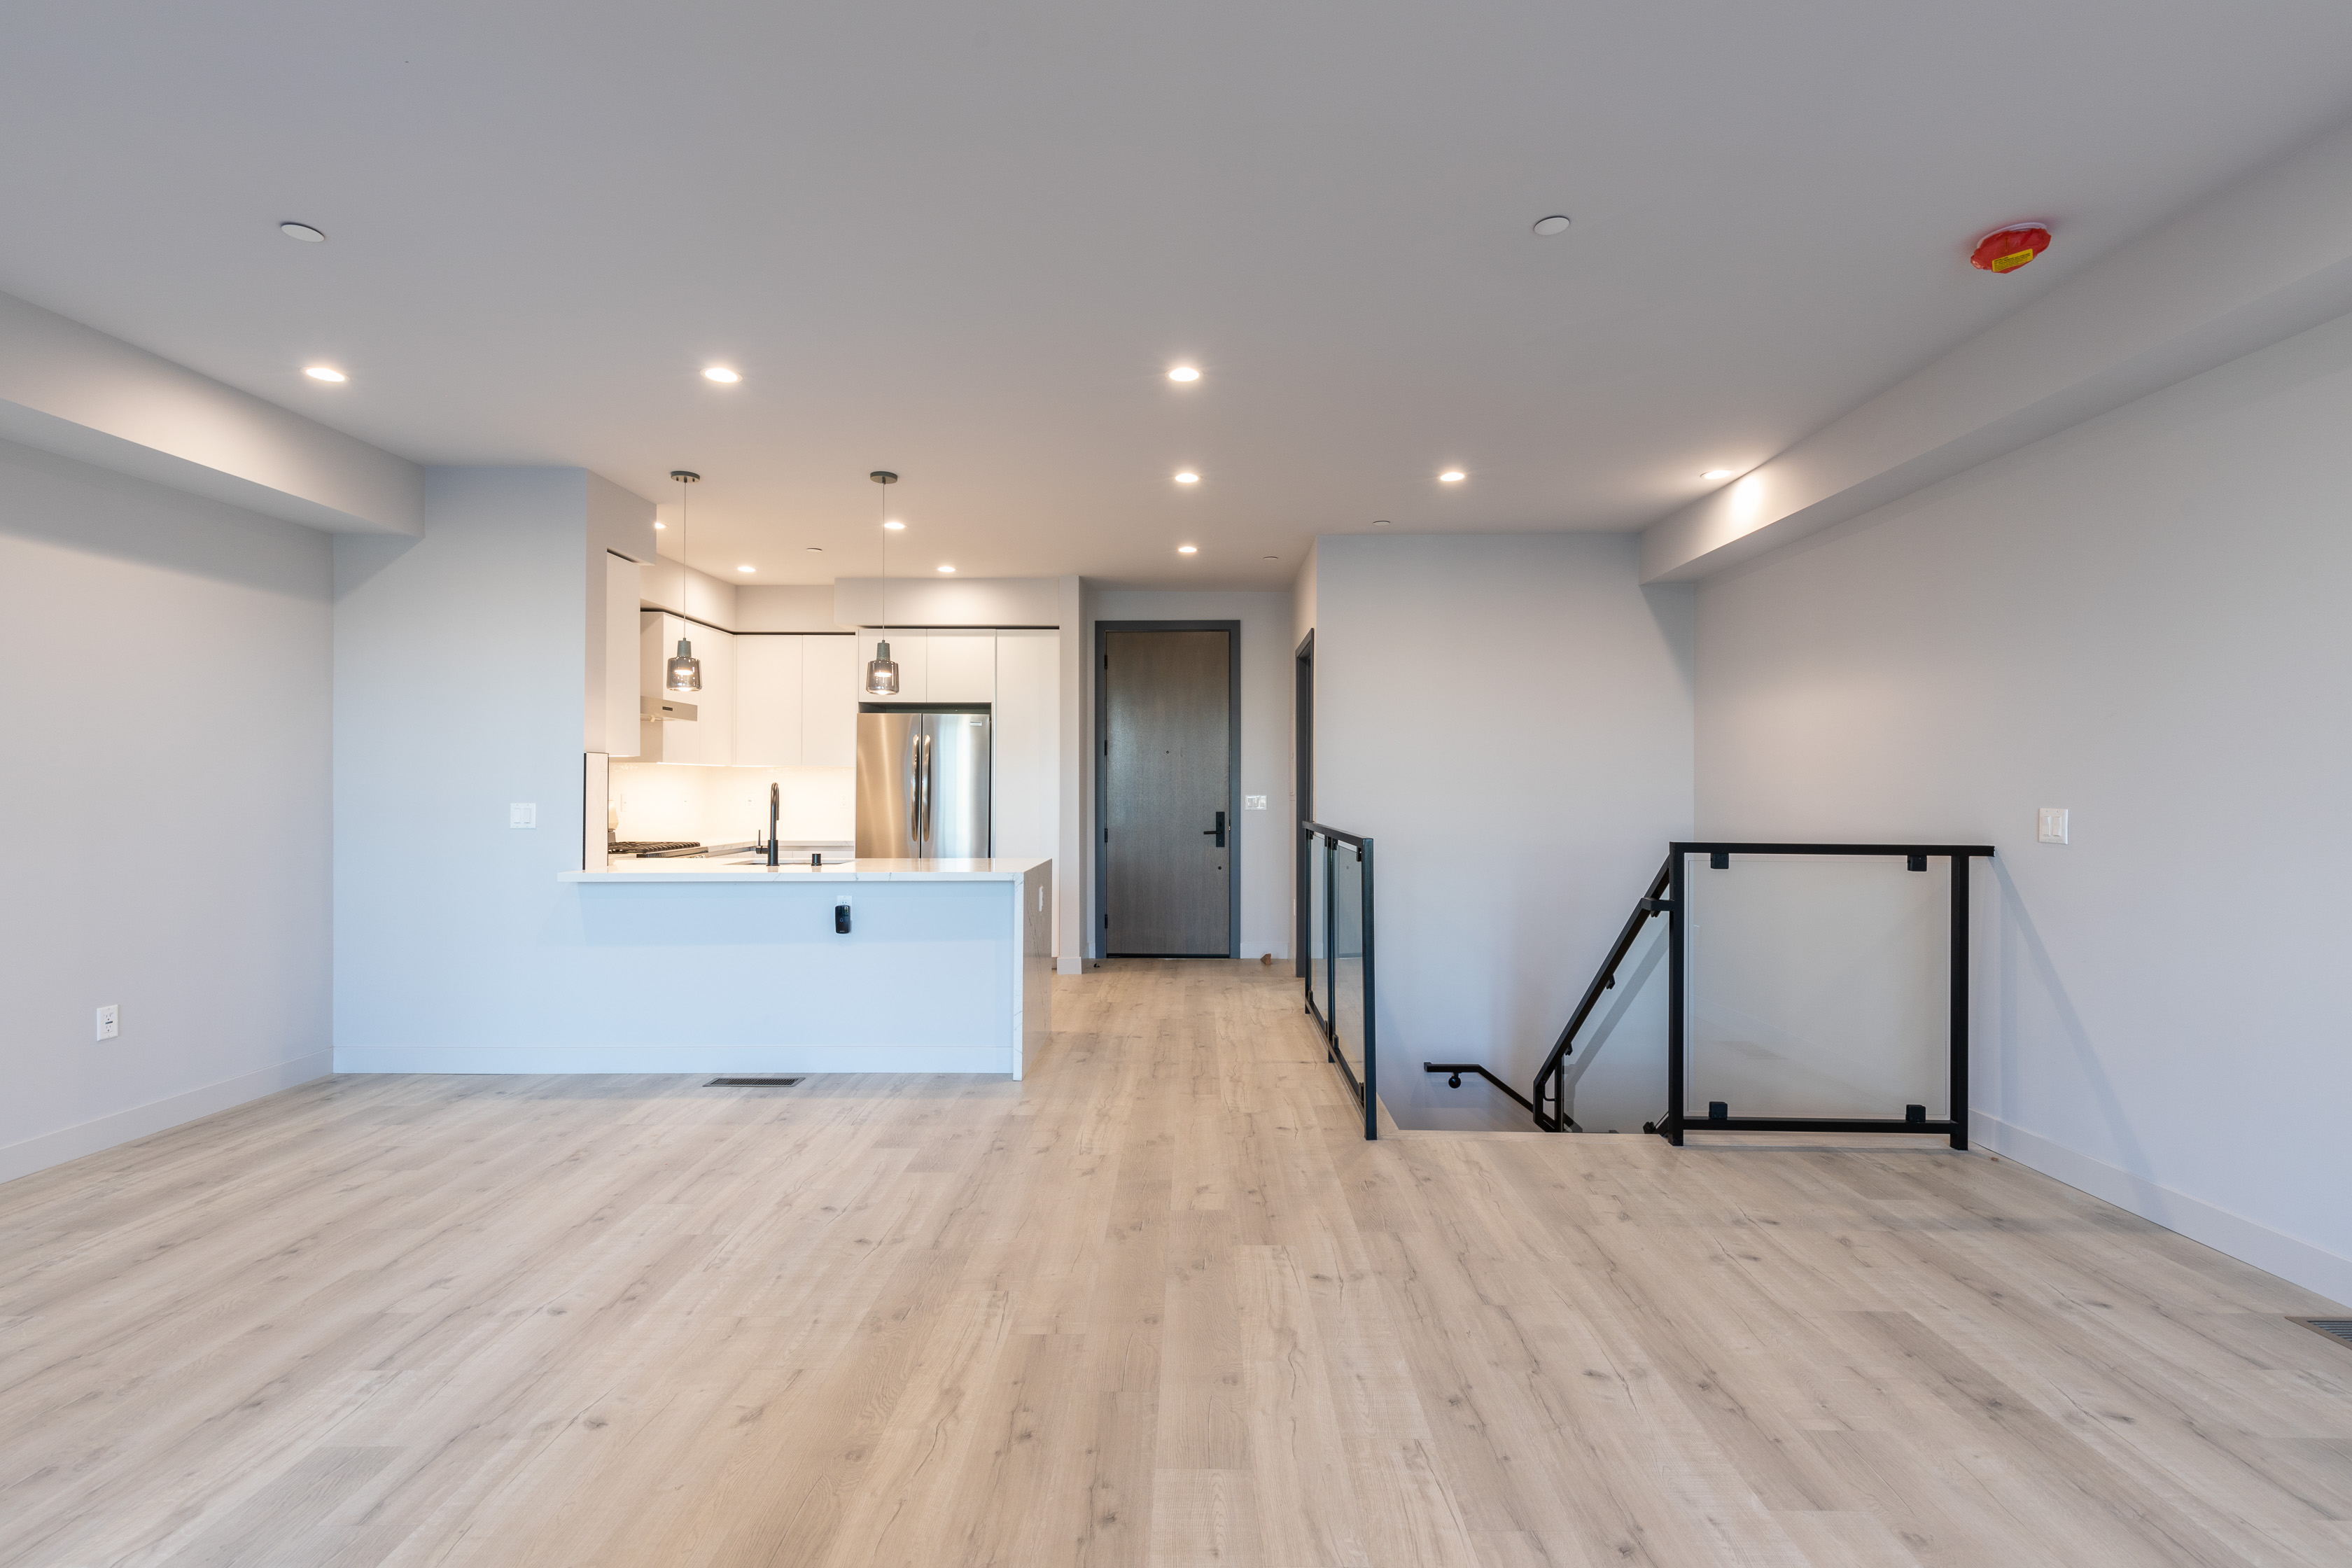 BRAND-NEW TOWNHOUSE UNIT (2BR/ 2.5BA) - LARGE PRIVATE PATIO, ROOFTOP, GYM, & 2 PARKING SPACES- LUXURY LEASE-UP!